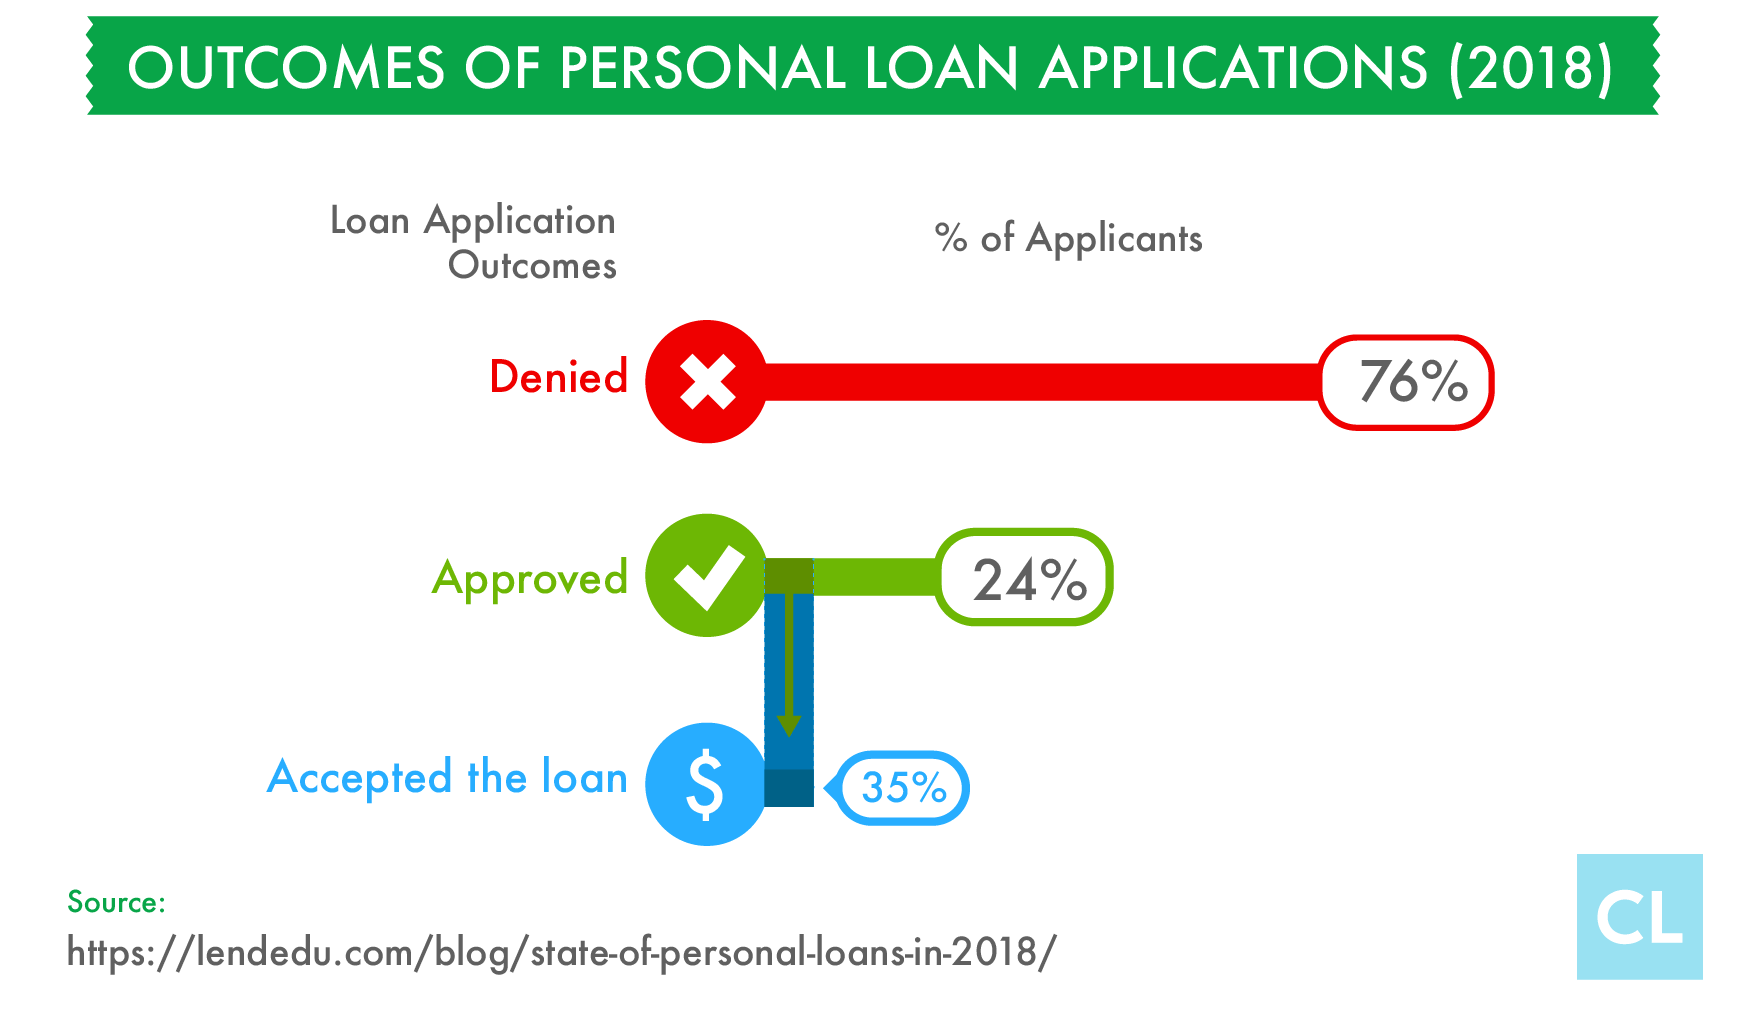 Outcomes of Personal Loan Applications